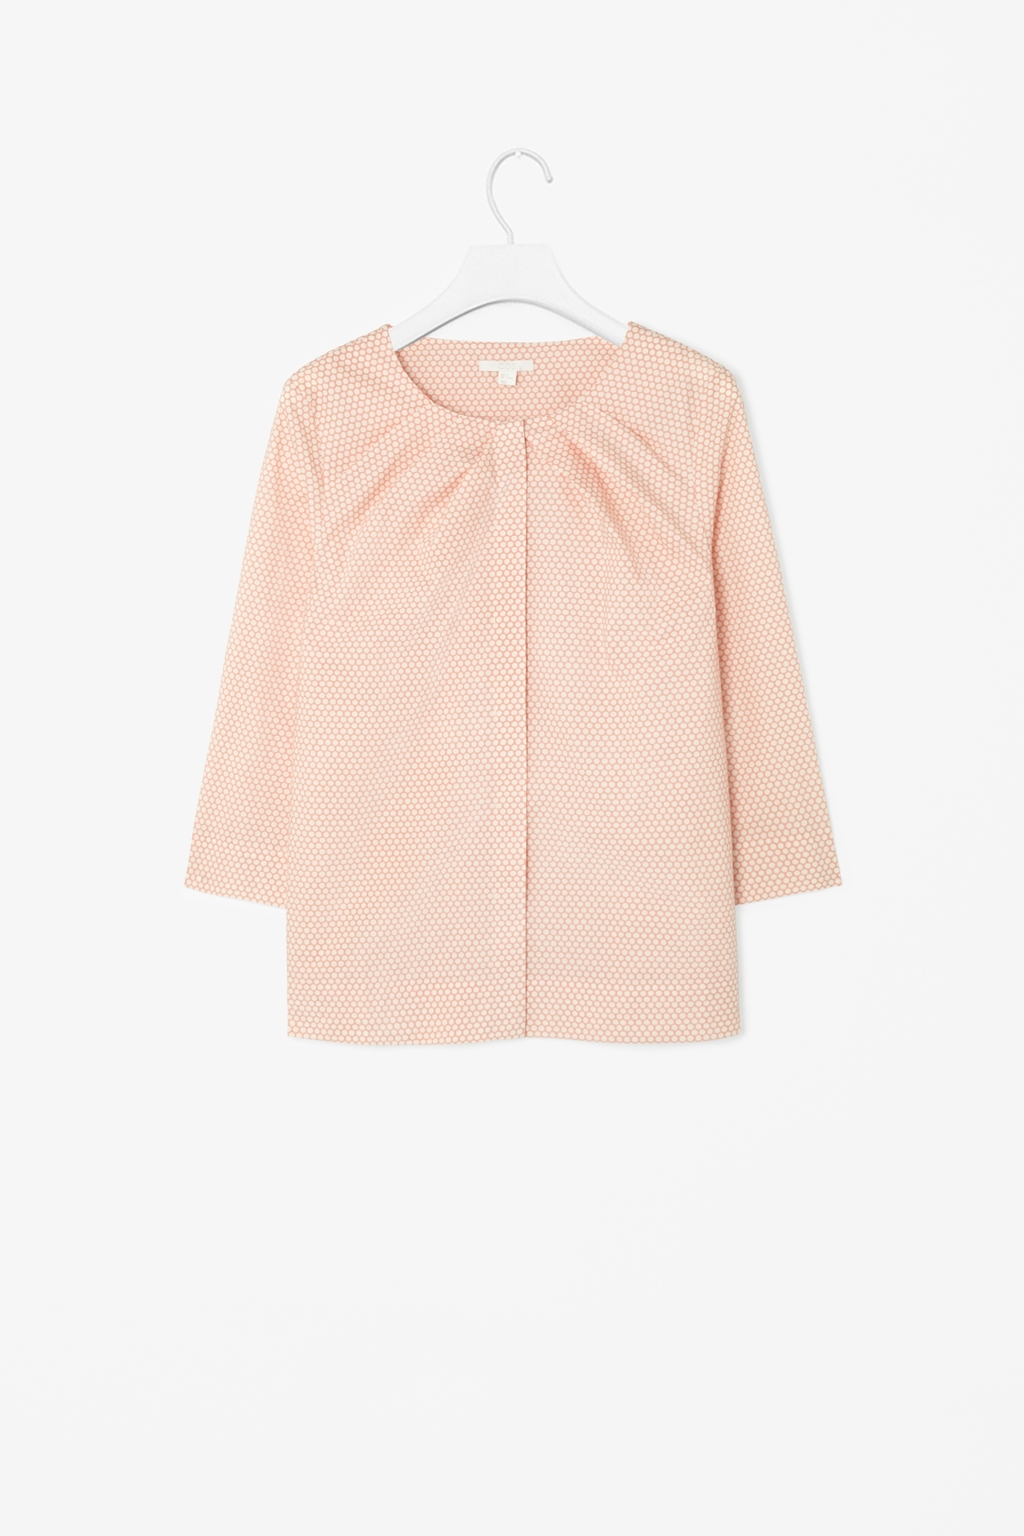 Printed Cotton Top - neckline: round neck; pattern: plain; style: blouse; predominant colour: pink; secondary colour: nude; occasions: casual; length: standard; fibres: cotton - 100%; fit: straight cut; sleeve length: 3/4 length; sleeve style: standard; texture group: cotton feel fabrics; bust detail: bulky details at bust; pattern type: fabric; season: s/s 2014; wardrobe: highlight